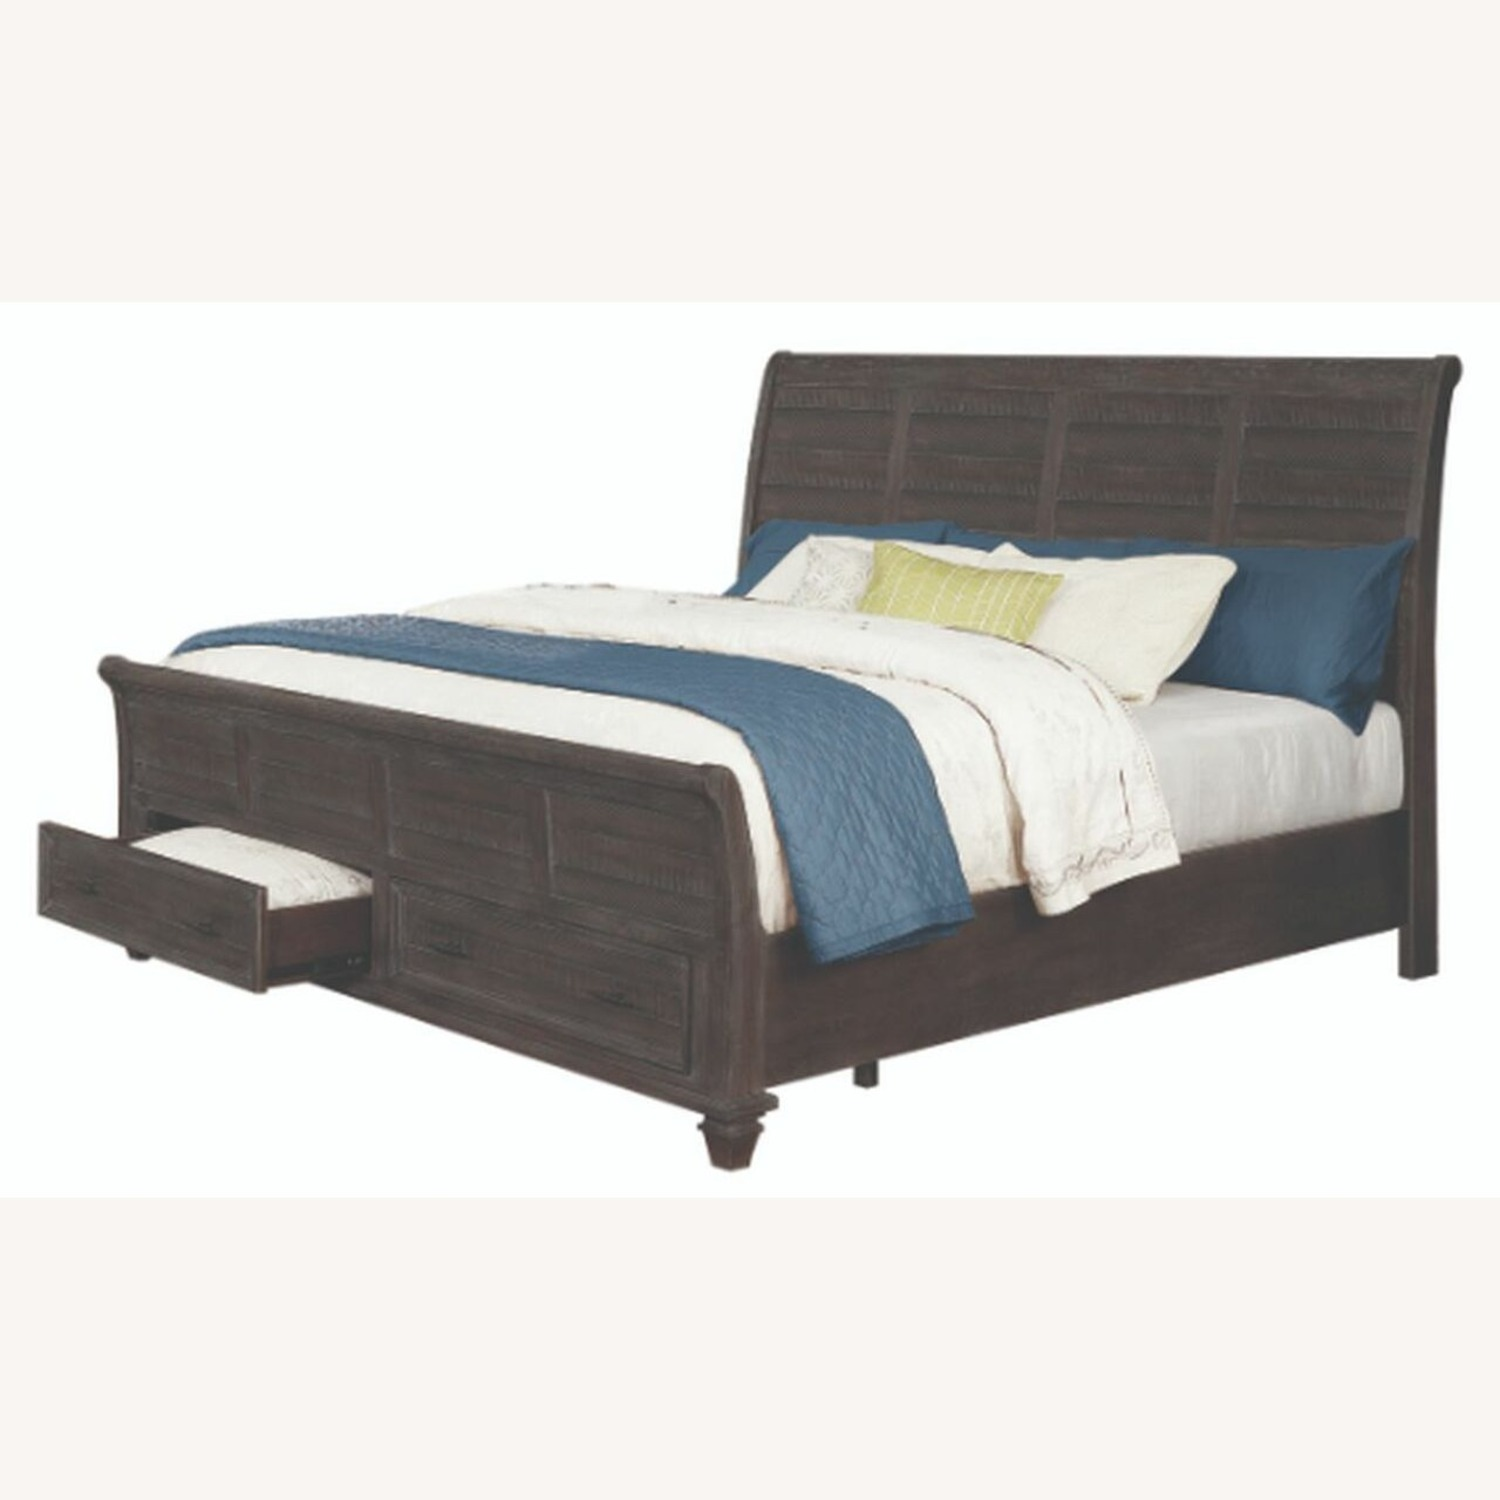 Queen Storage Bed In Weathered Carbon Finish - image-1